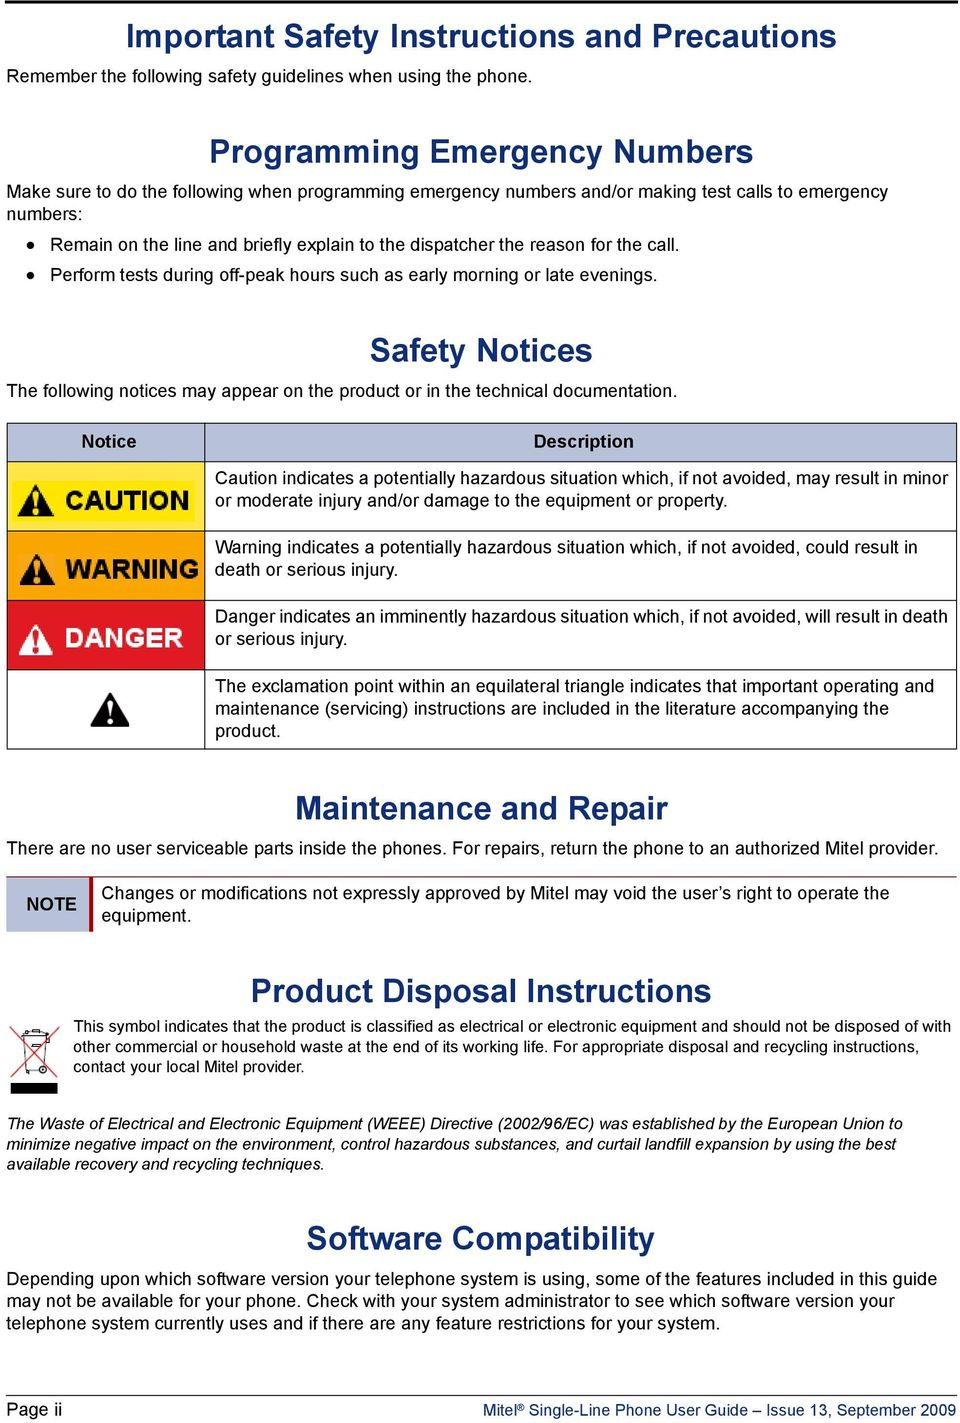 the reason for the call. Perform tests during off-peak hours such as early morning or late evenings. Safety Notices The following notices may appear on the product or in the technical documentation.